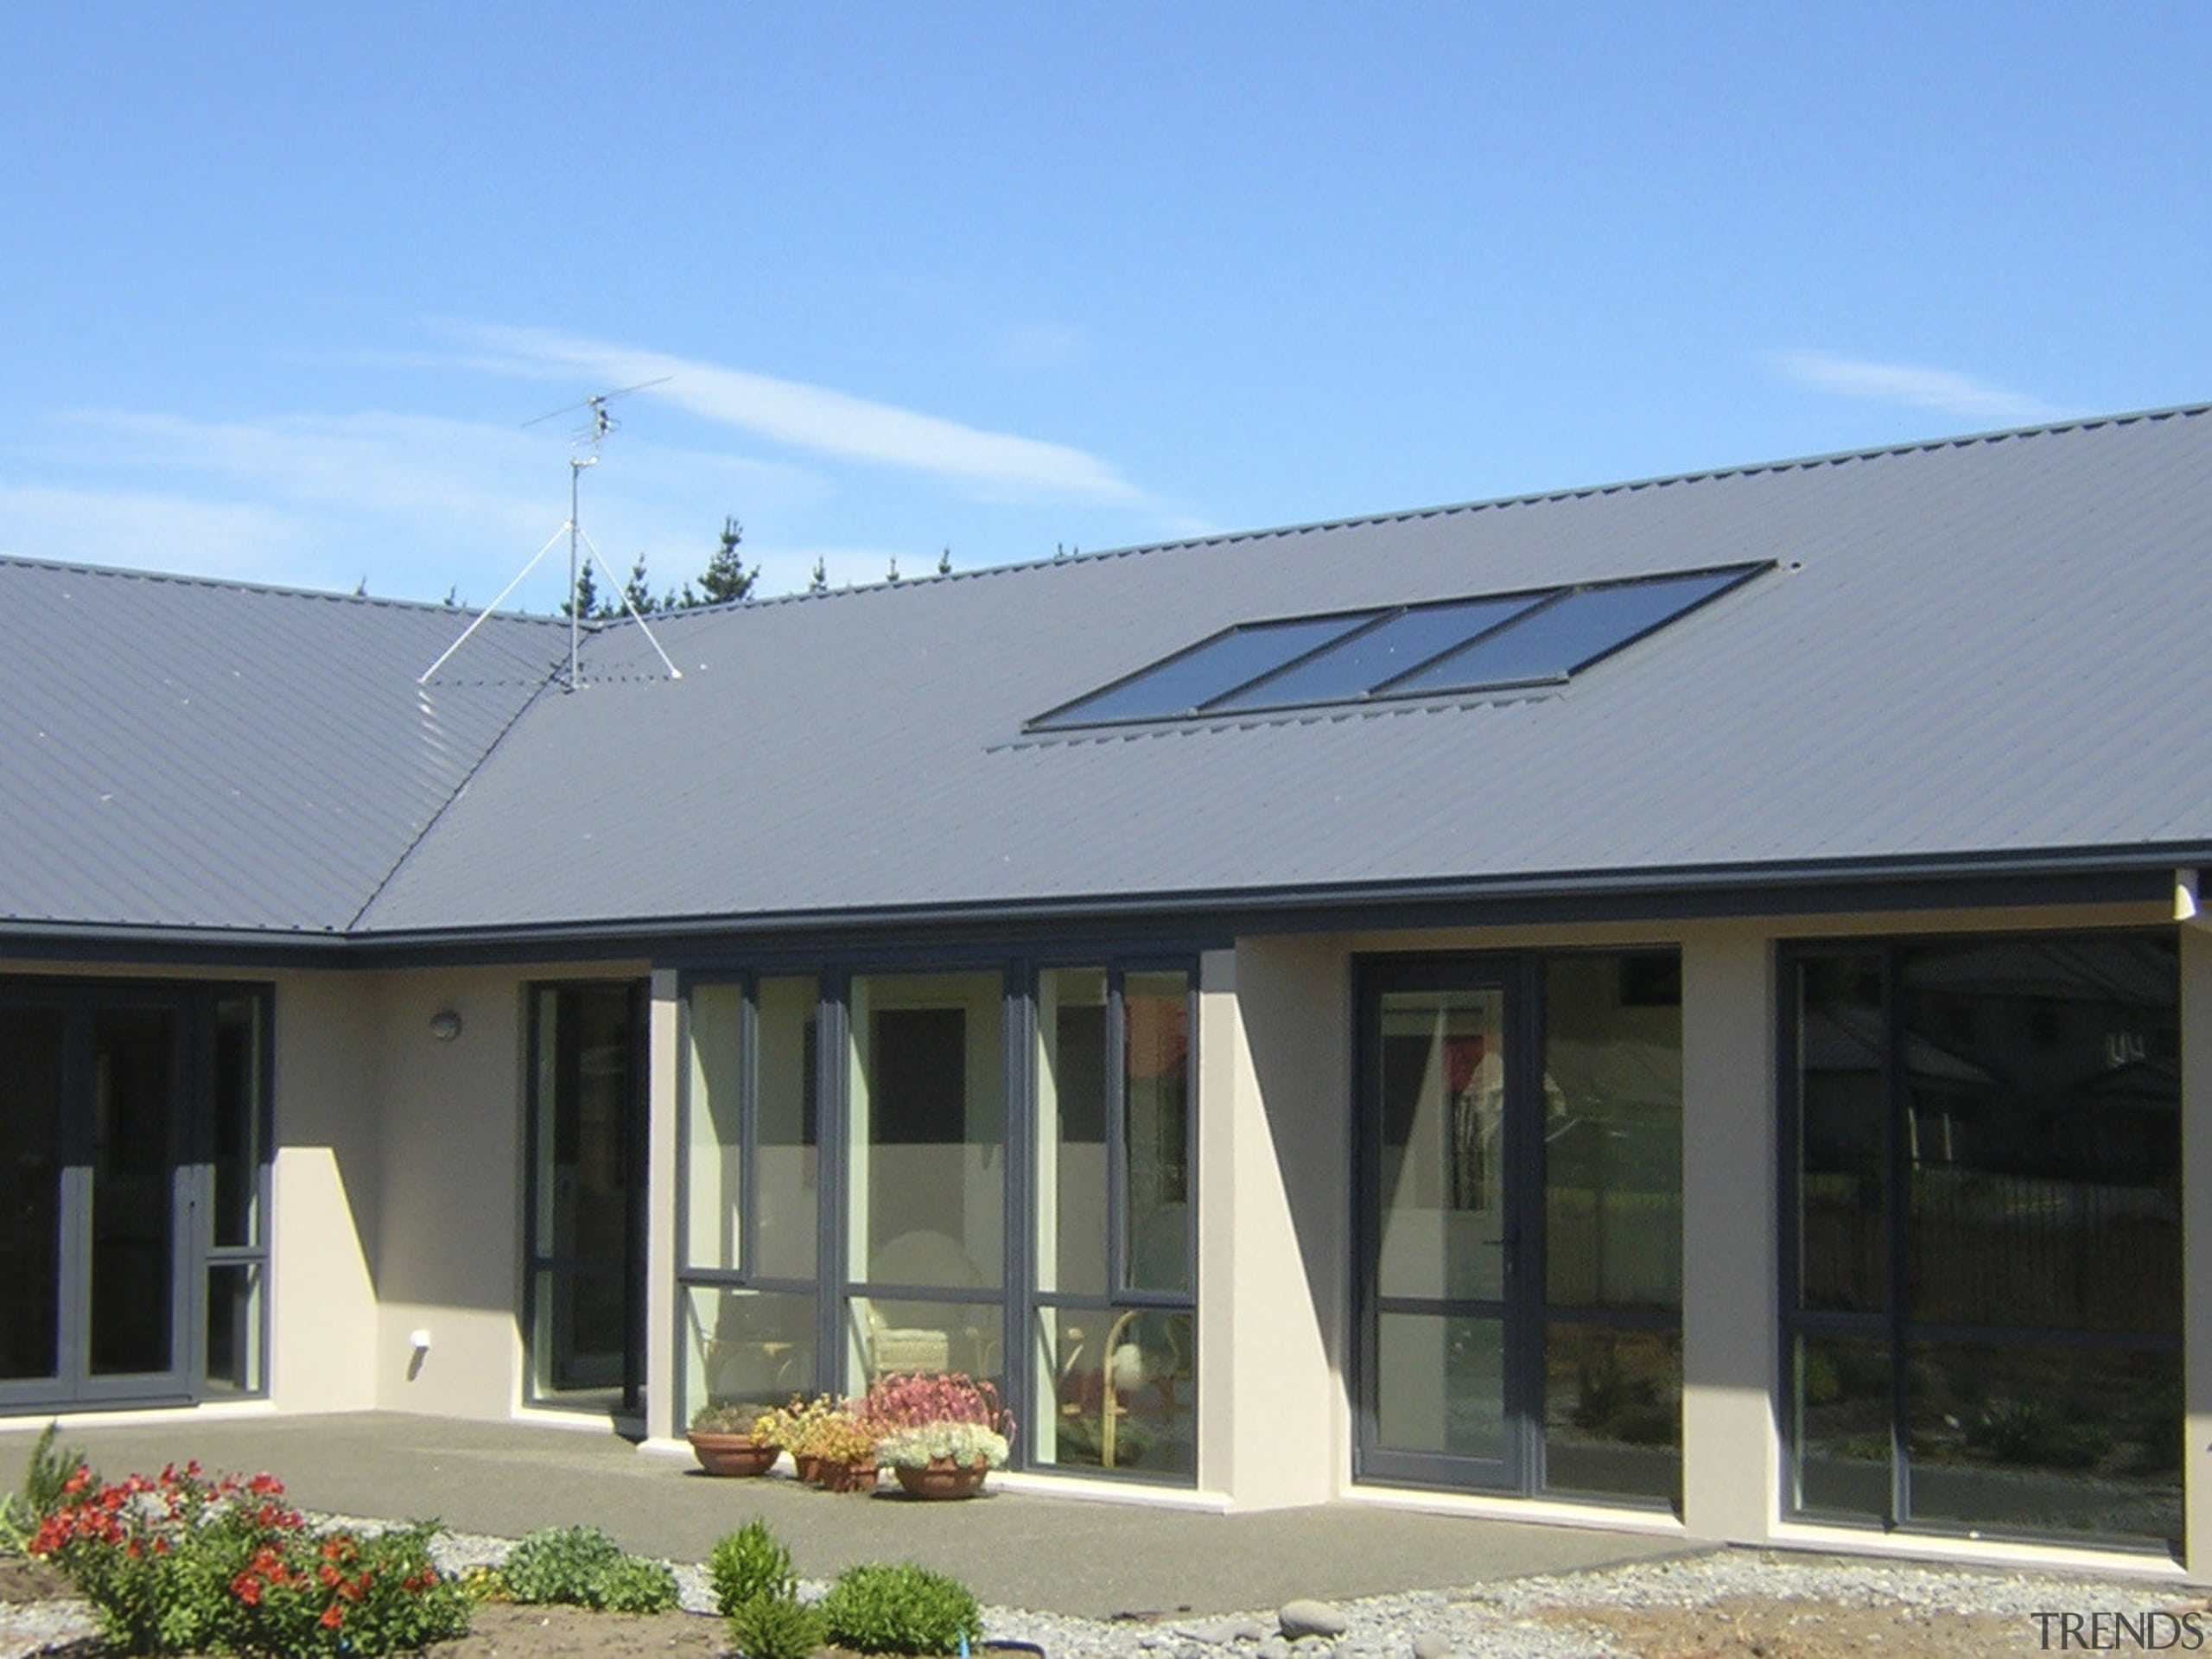 This large home efficiently uses solar energy thanks daylighting, facade, home, house, property, real estate, roof, siding, window, teal